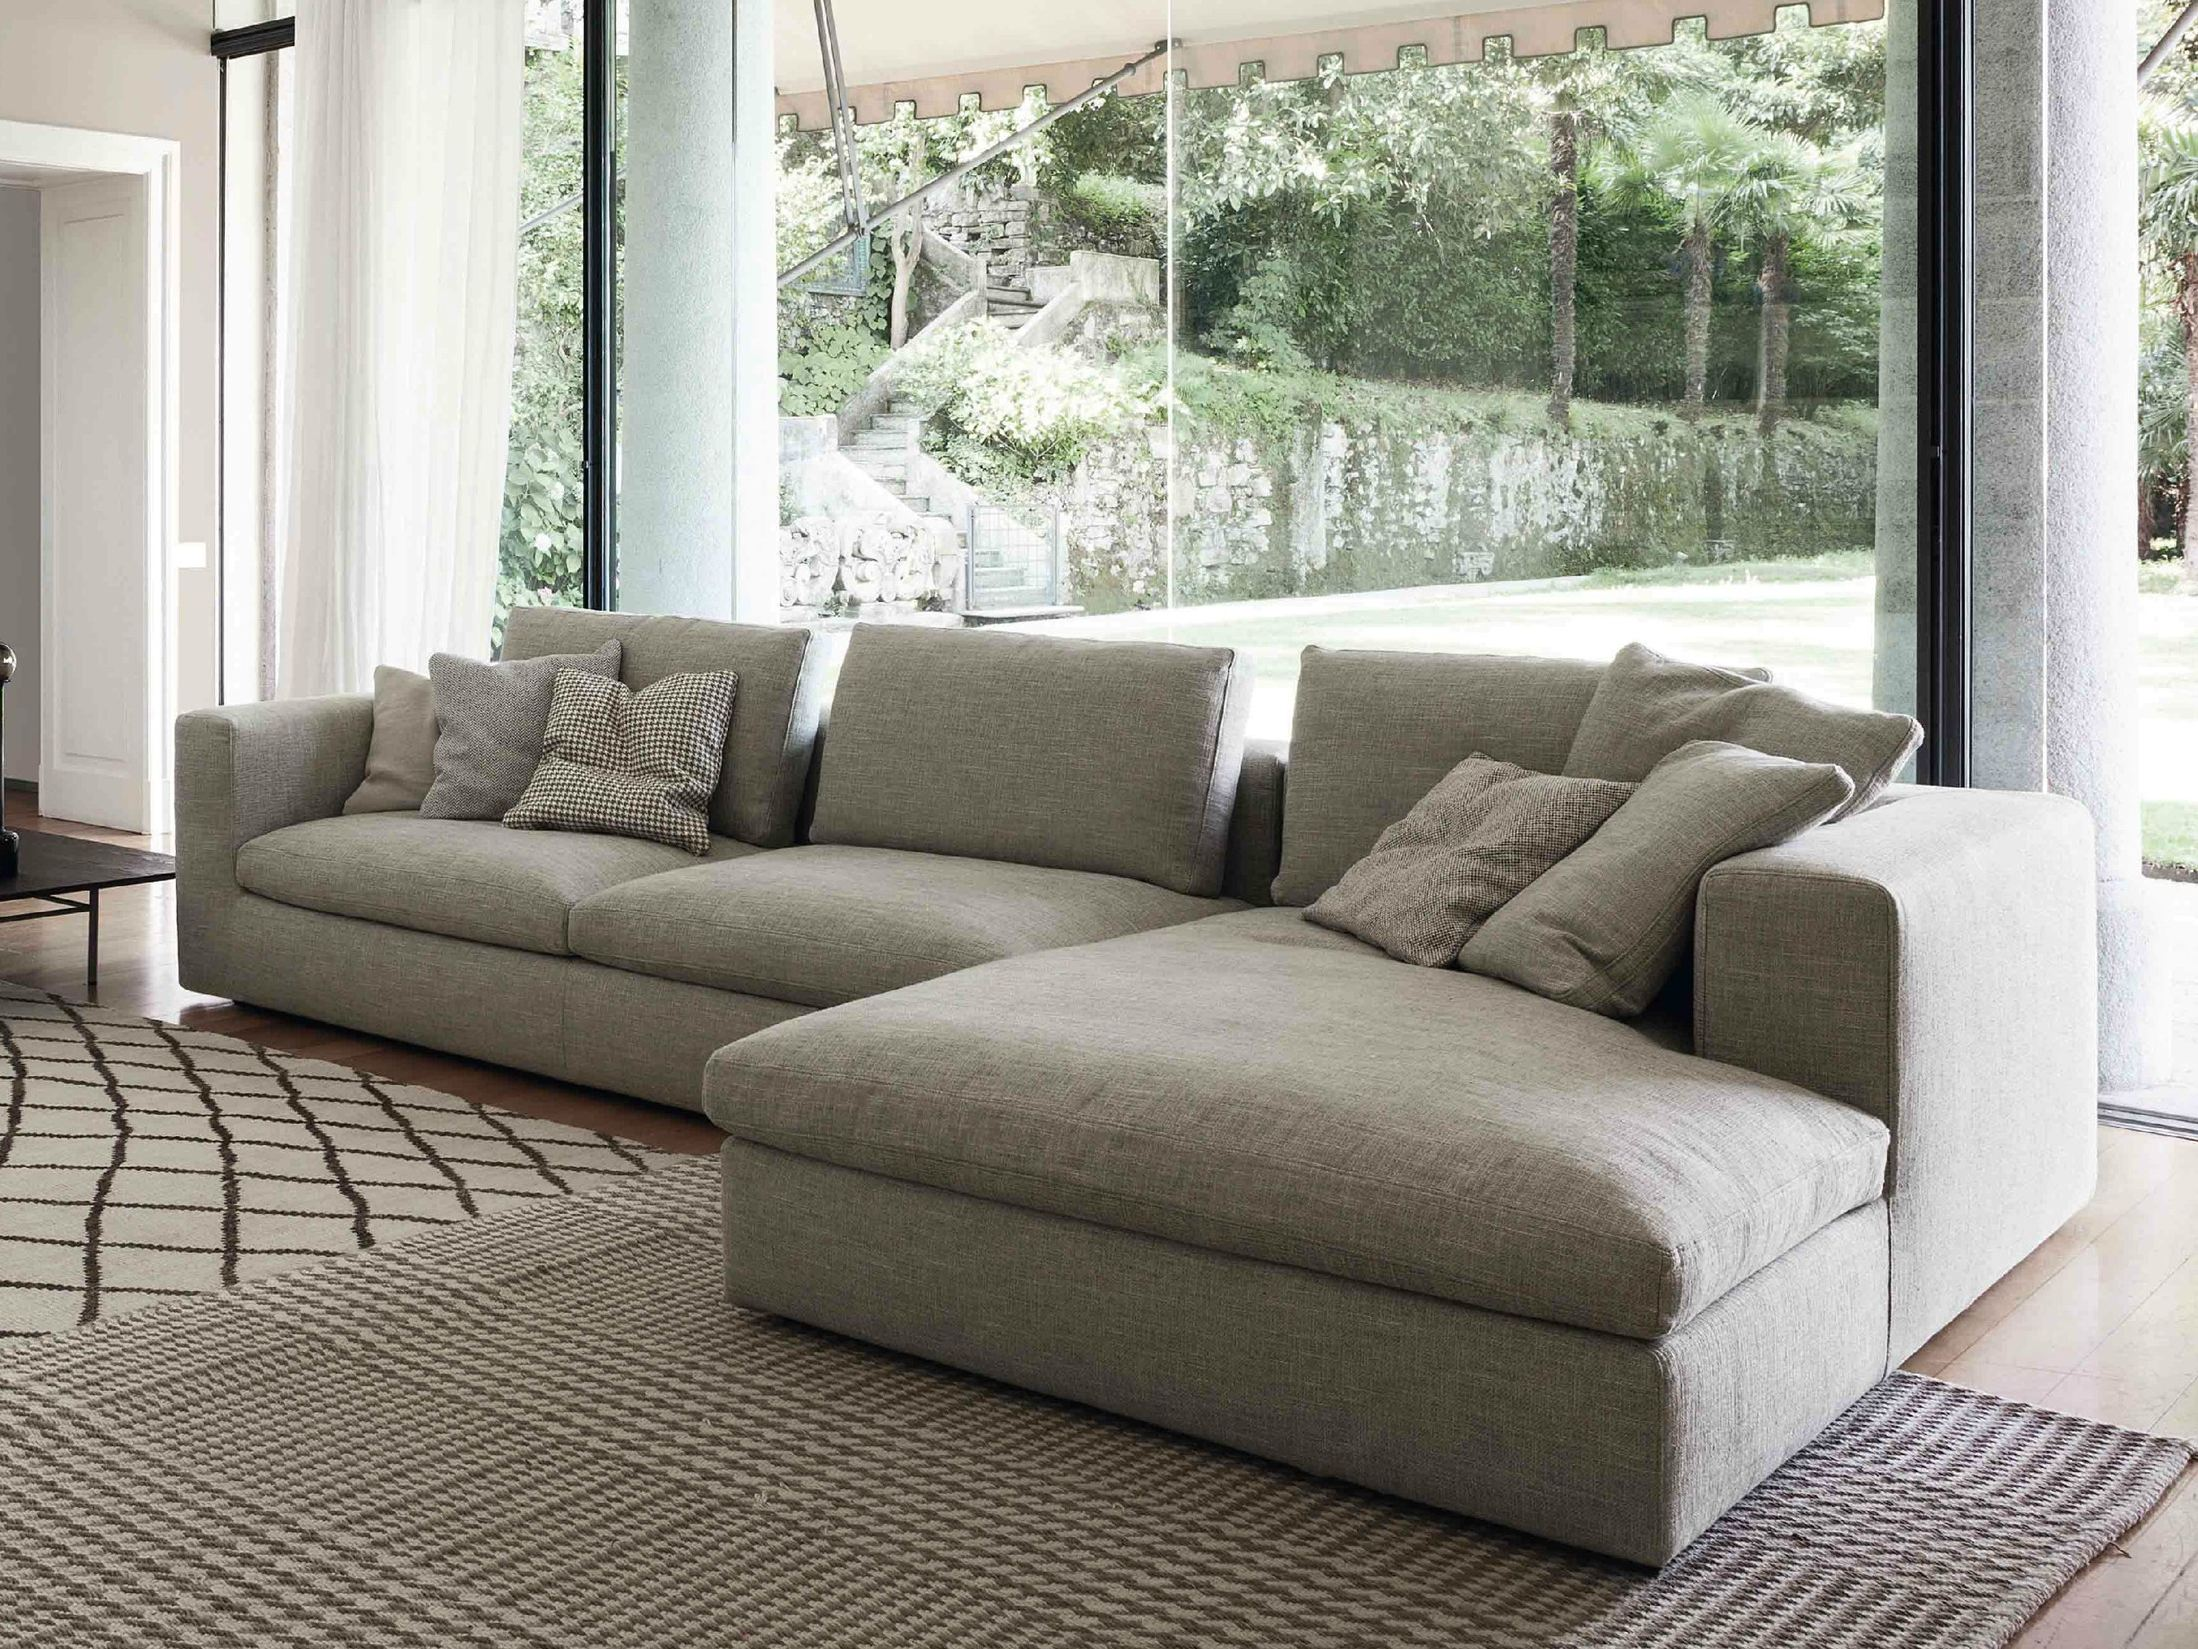 Land sofa with chaise longue by bonaldo - Canape chesterfield beige ...